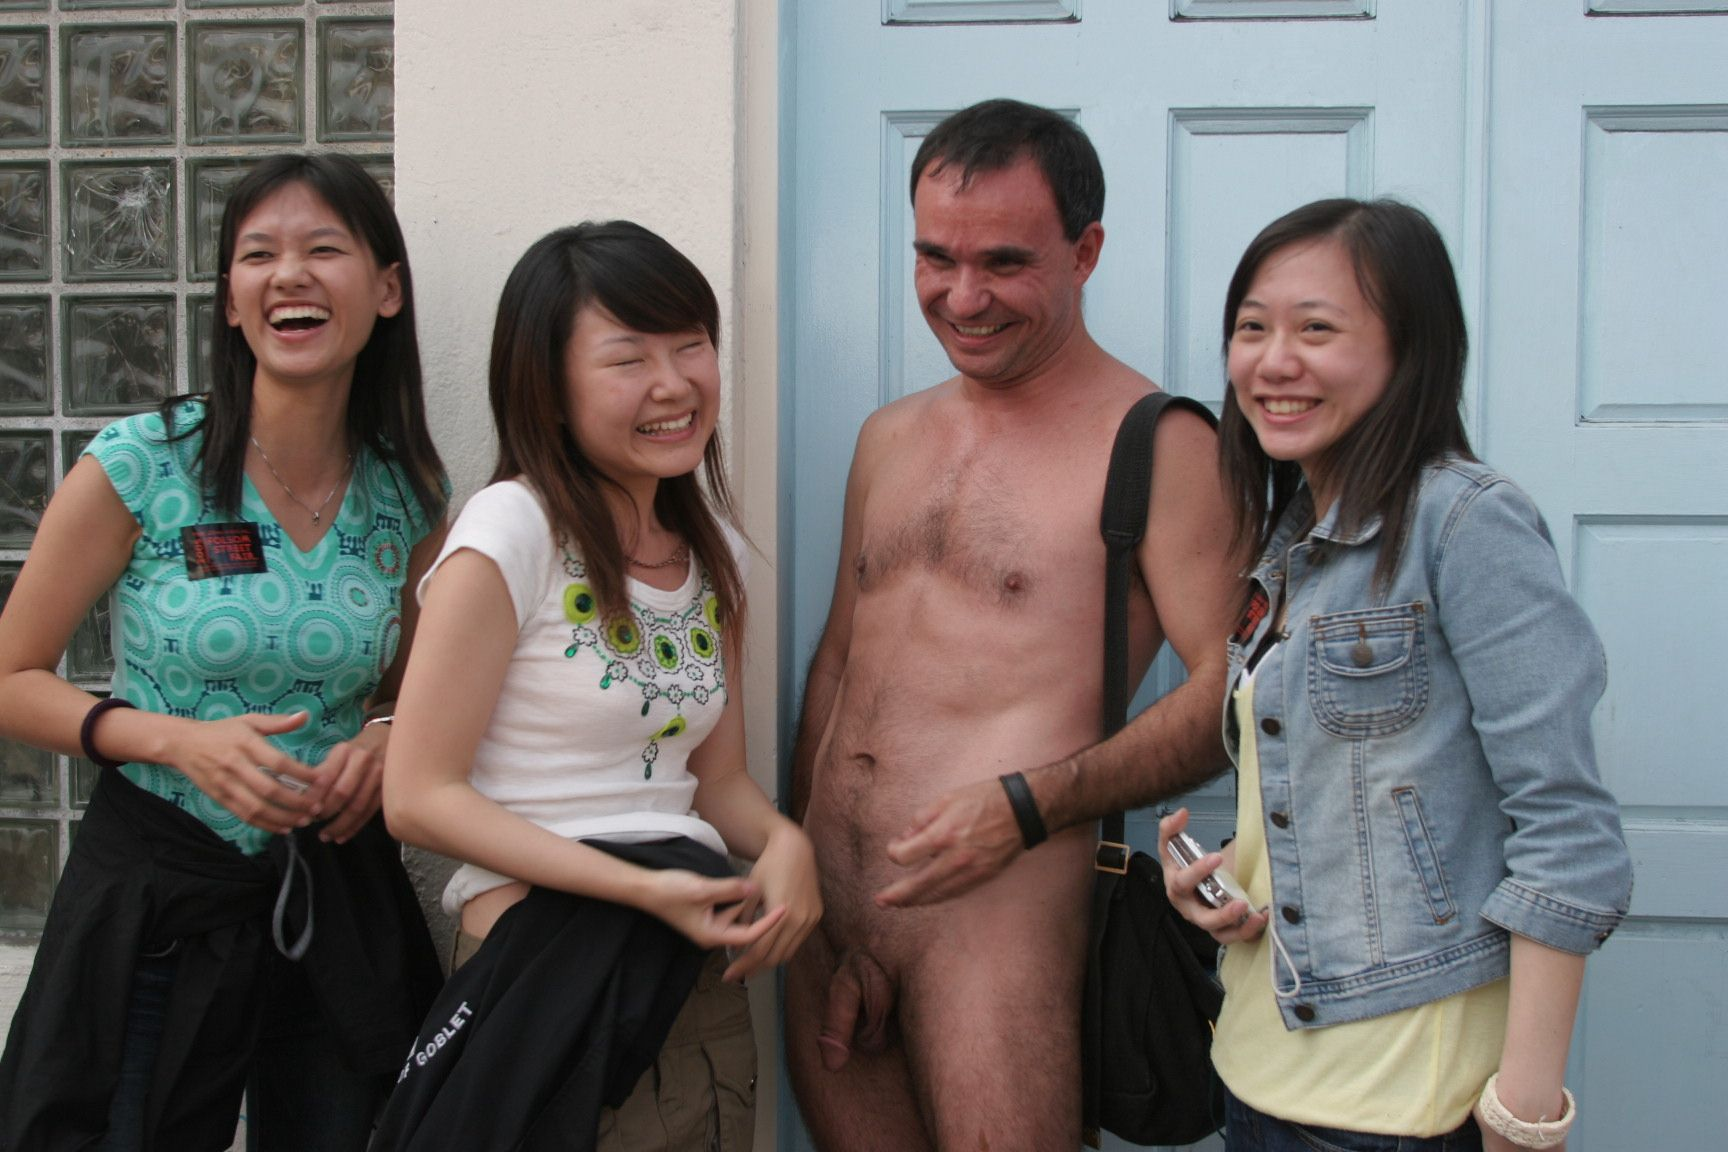 3 Clothed Gals And The Nude Man